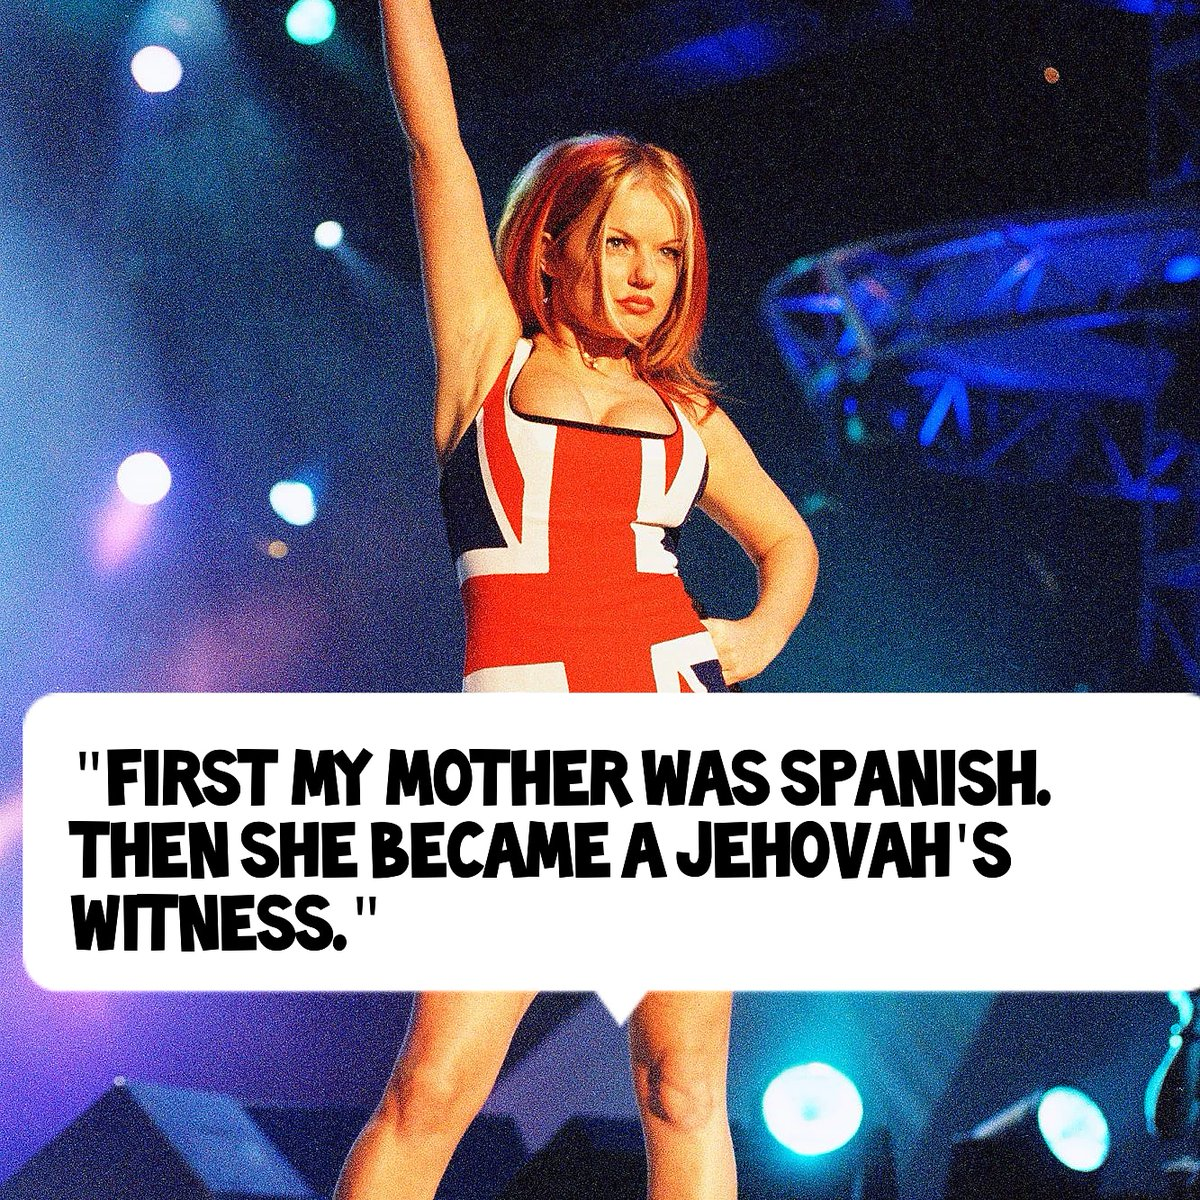 It's been a rough time for Ginger Spice's mother.   #dumb #quotes #spanish #jehovahswitnesses #spicegirls #gingerspice #coolbritannia #quotes #celebrity https://t.co/5yQOrJTM1o